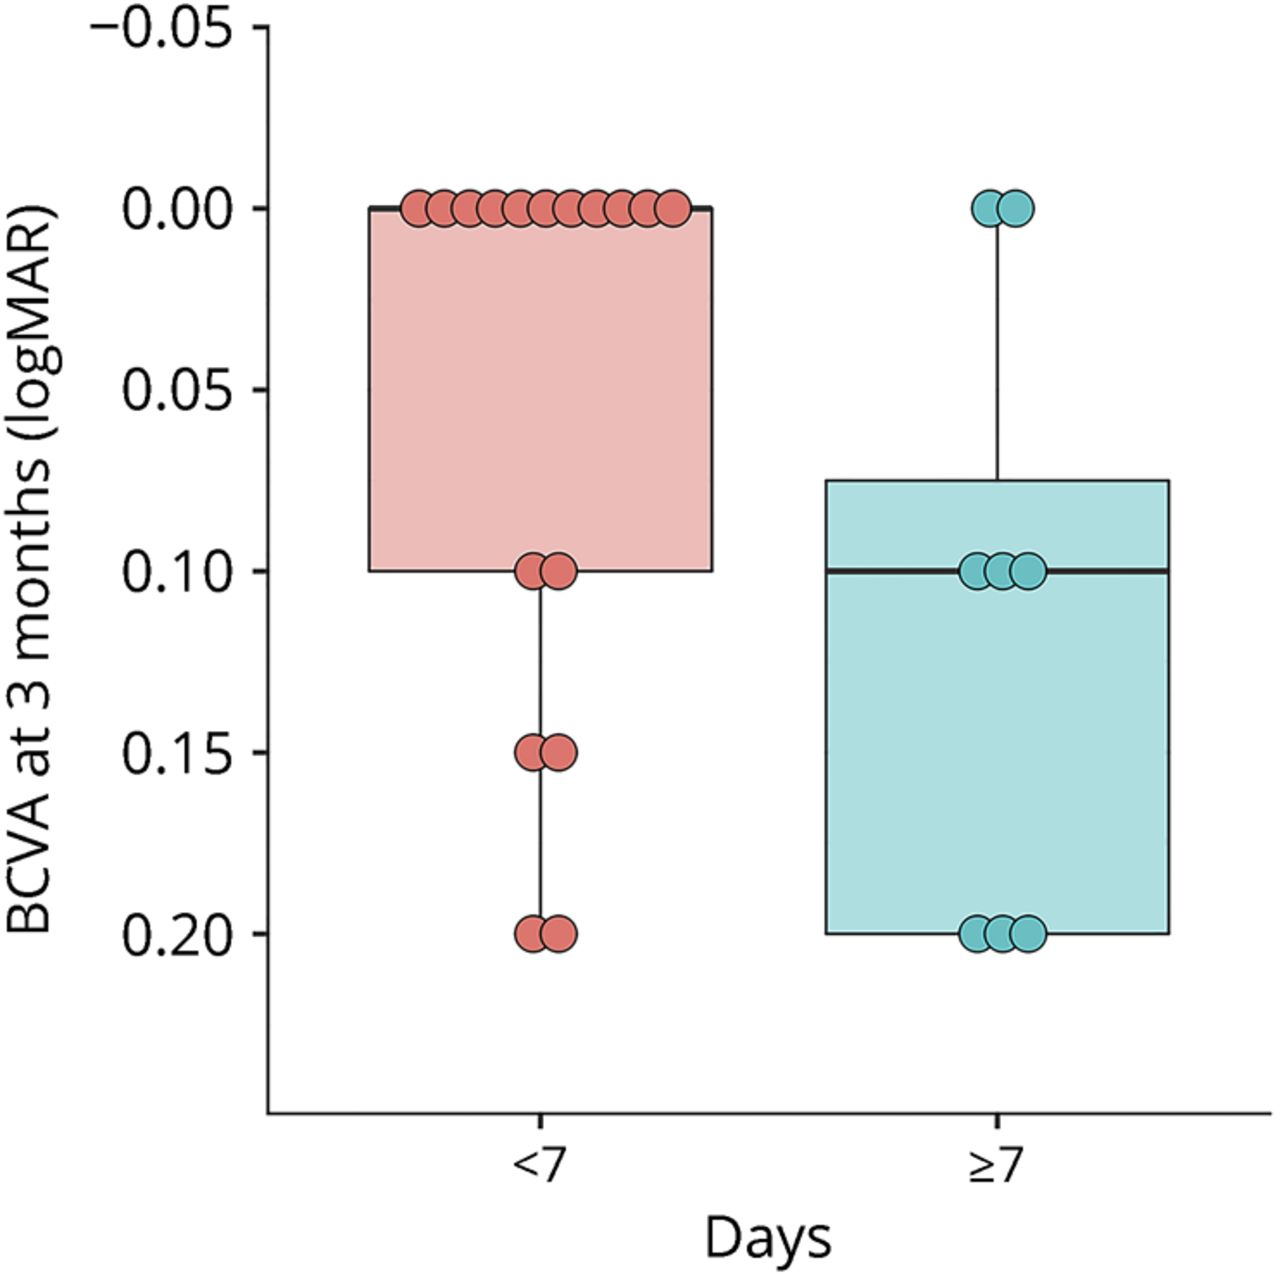 Does time equal vision in the acute treatment of a cohort of AQP4